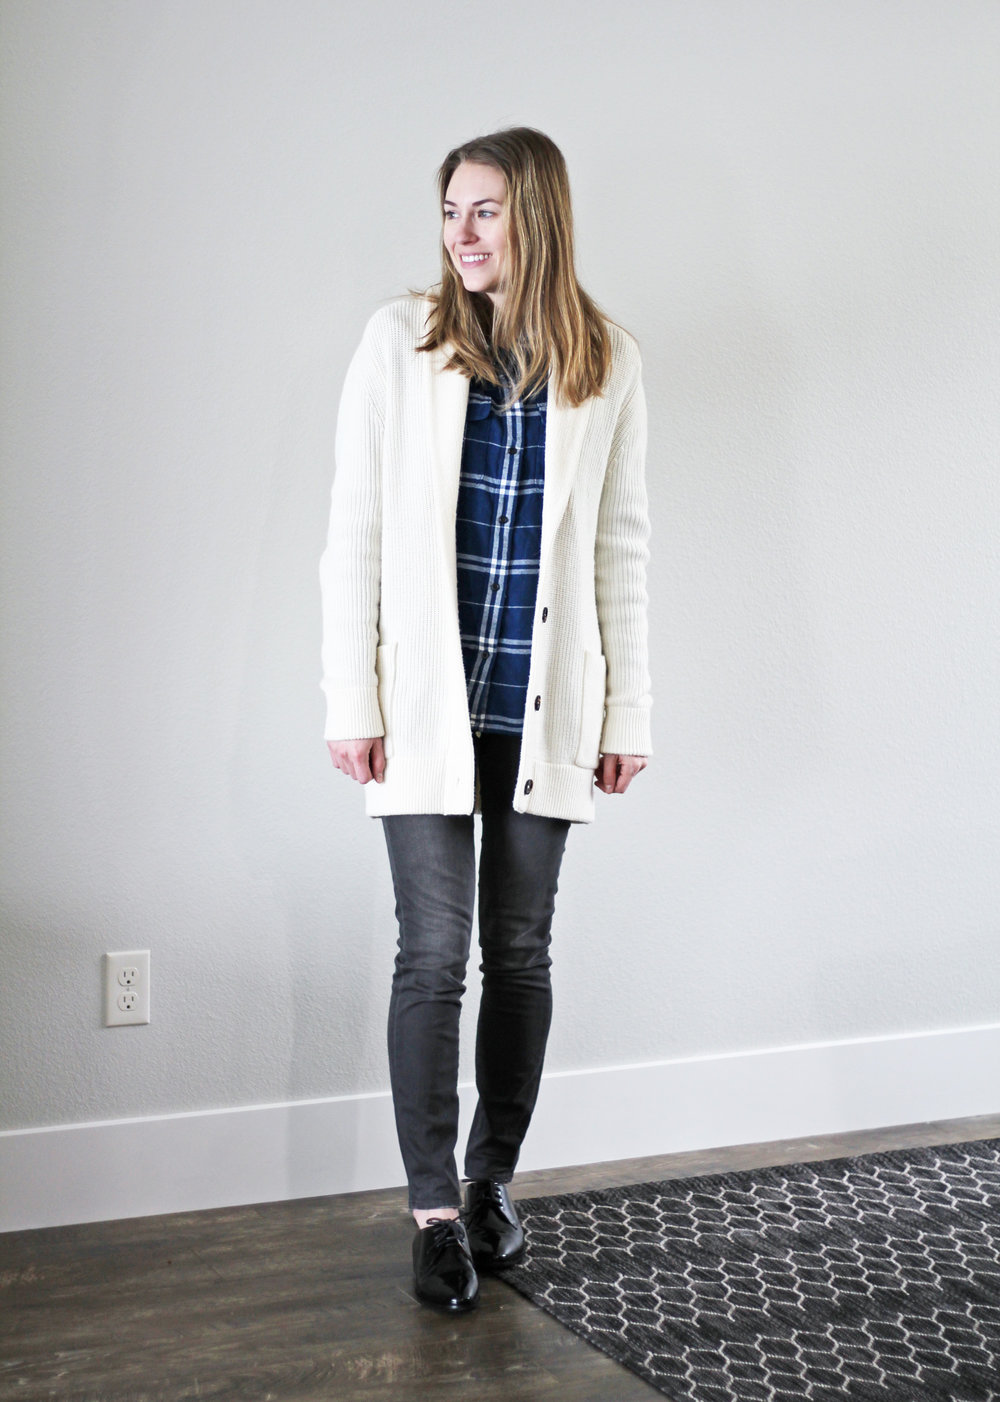 Winter 10x10: Ivory chunky knit cardigan, blue plaid flannel shirt, grey skinny jeans, shiny black oxfords — Cotton Cashmere Cat Hair